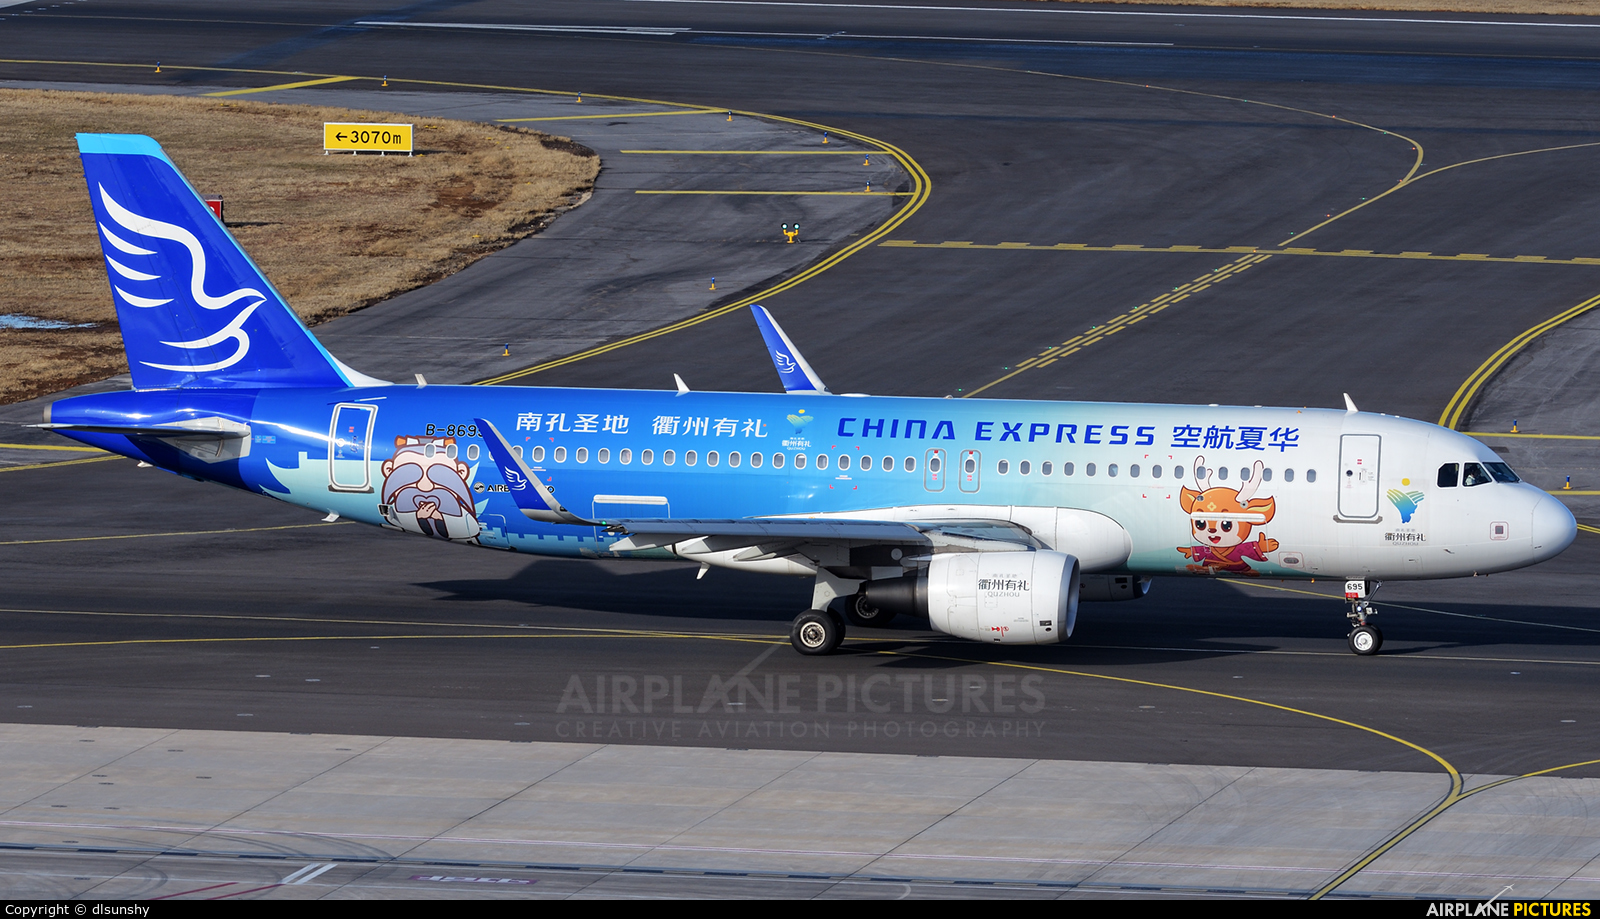 China Express Airlines B-8695 aircraft at Dalian Zhoushuizi Int'l